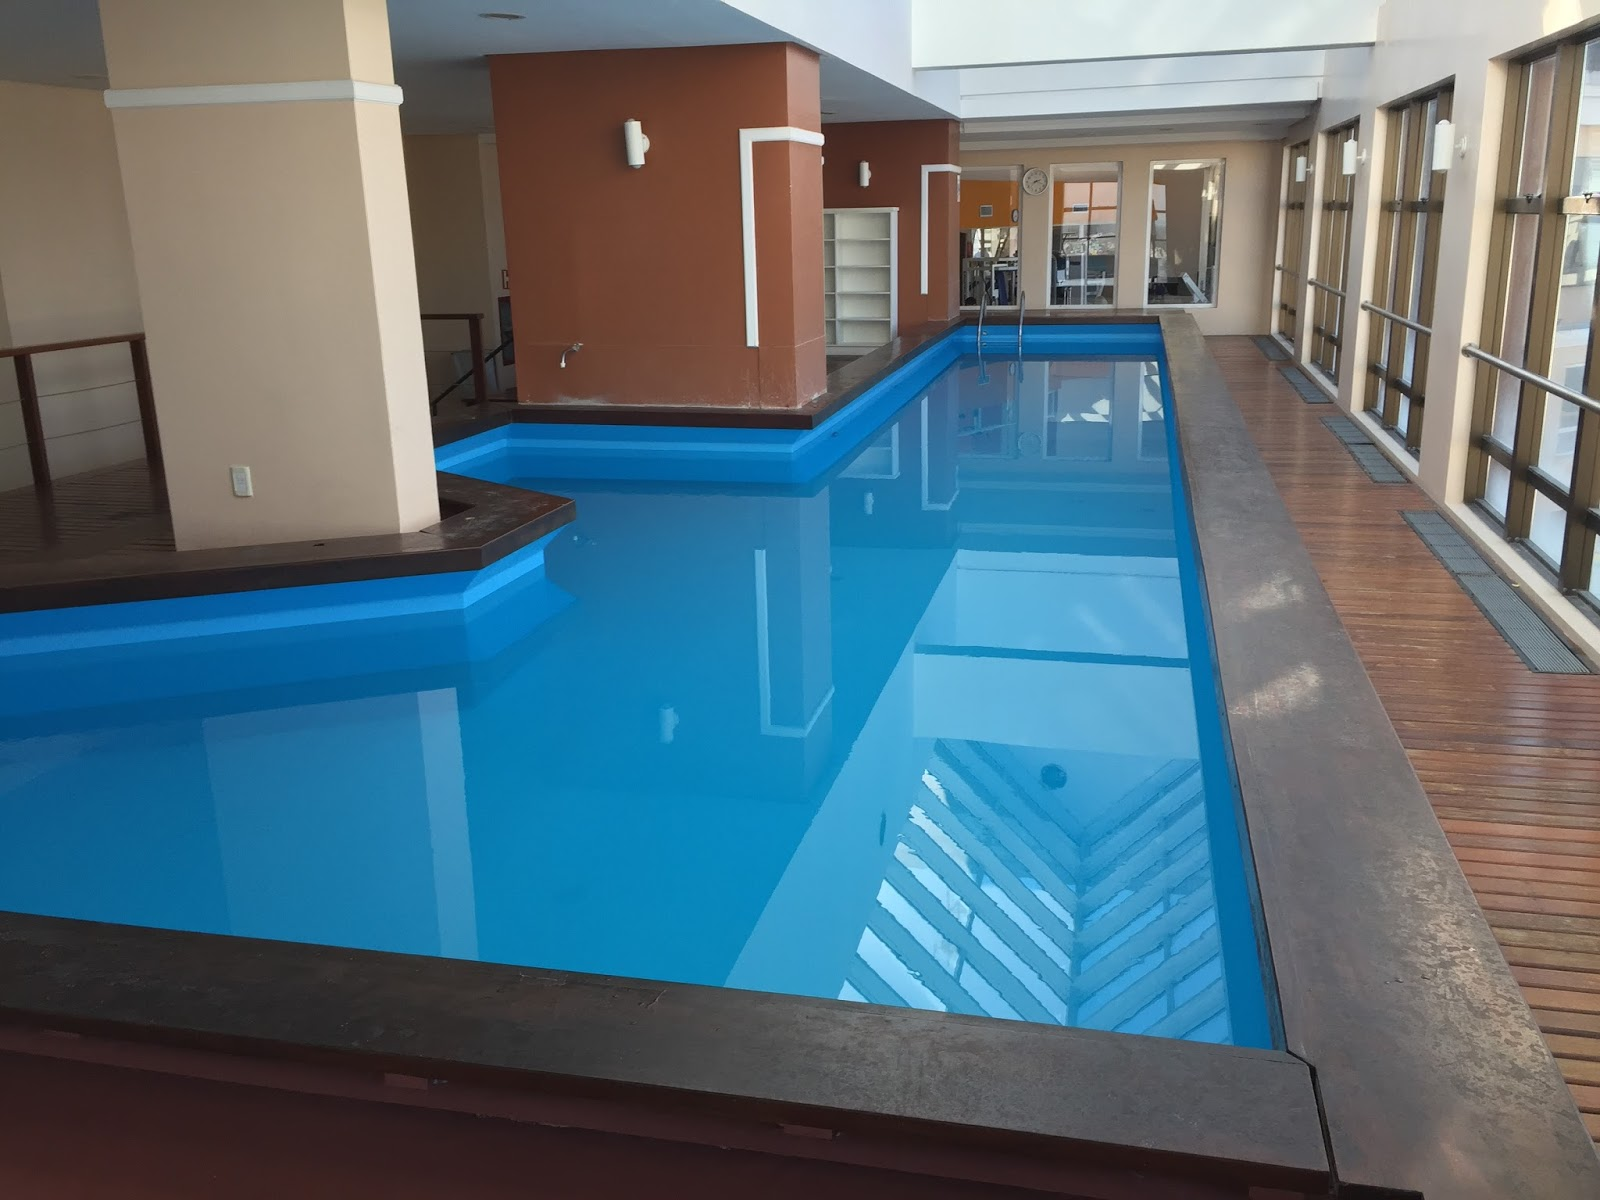 Piscina do Intercity Hotel em Caxias so Sul